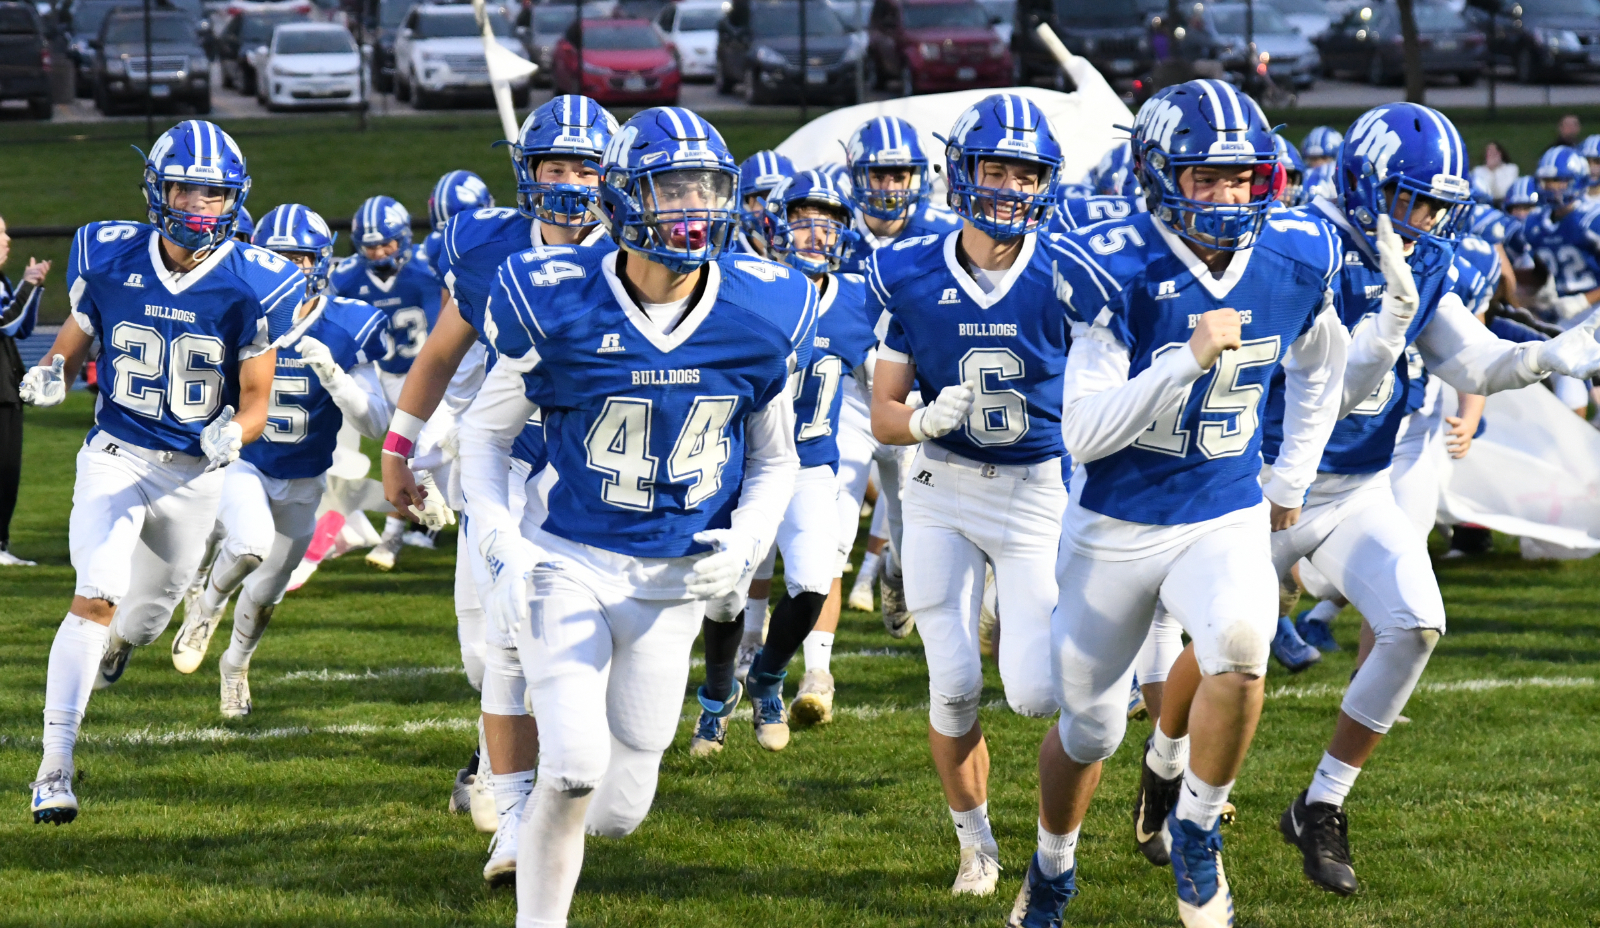 2019 Van Meter Football Post-Season Honors